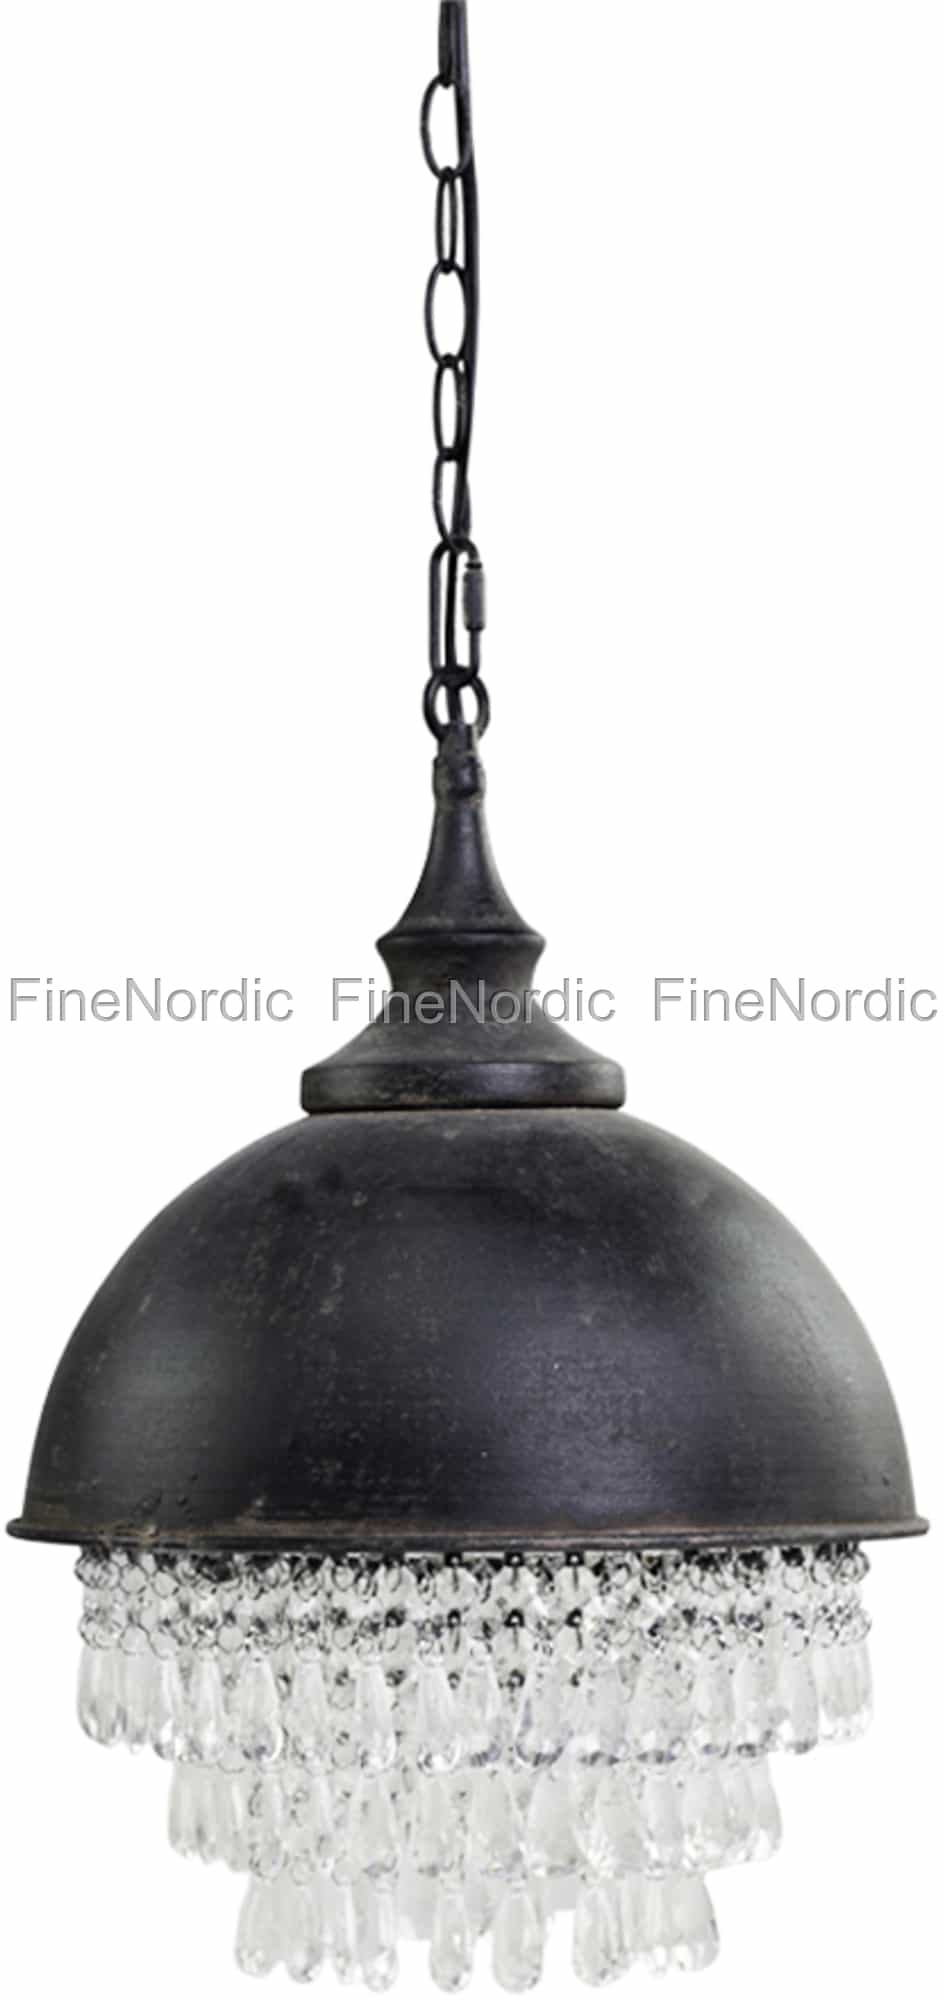 Chic Antique Factory Lampe med Prism Svart